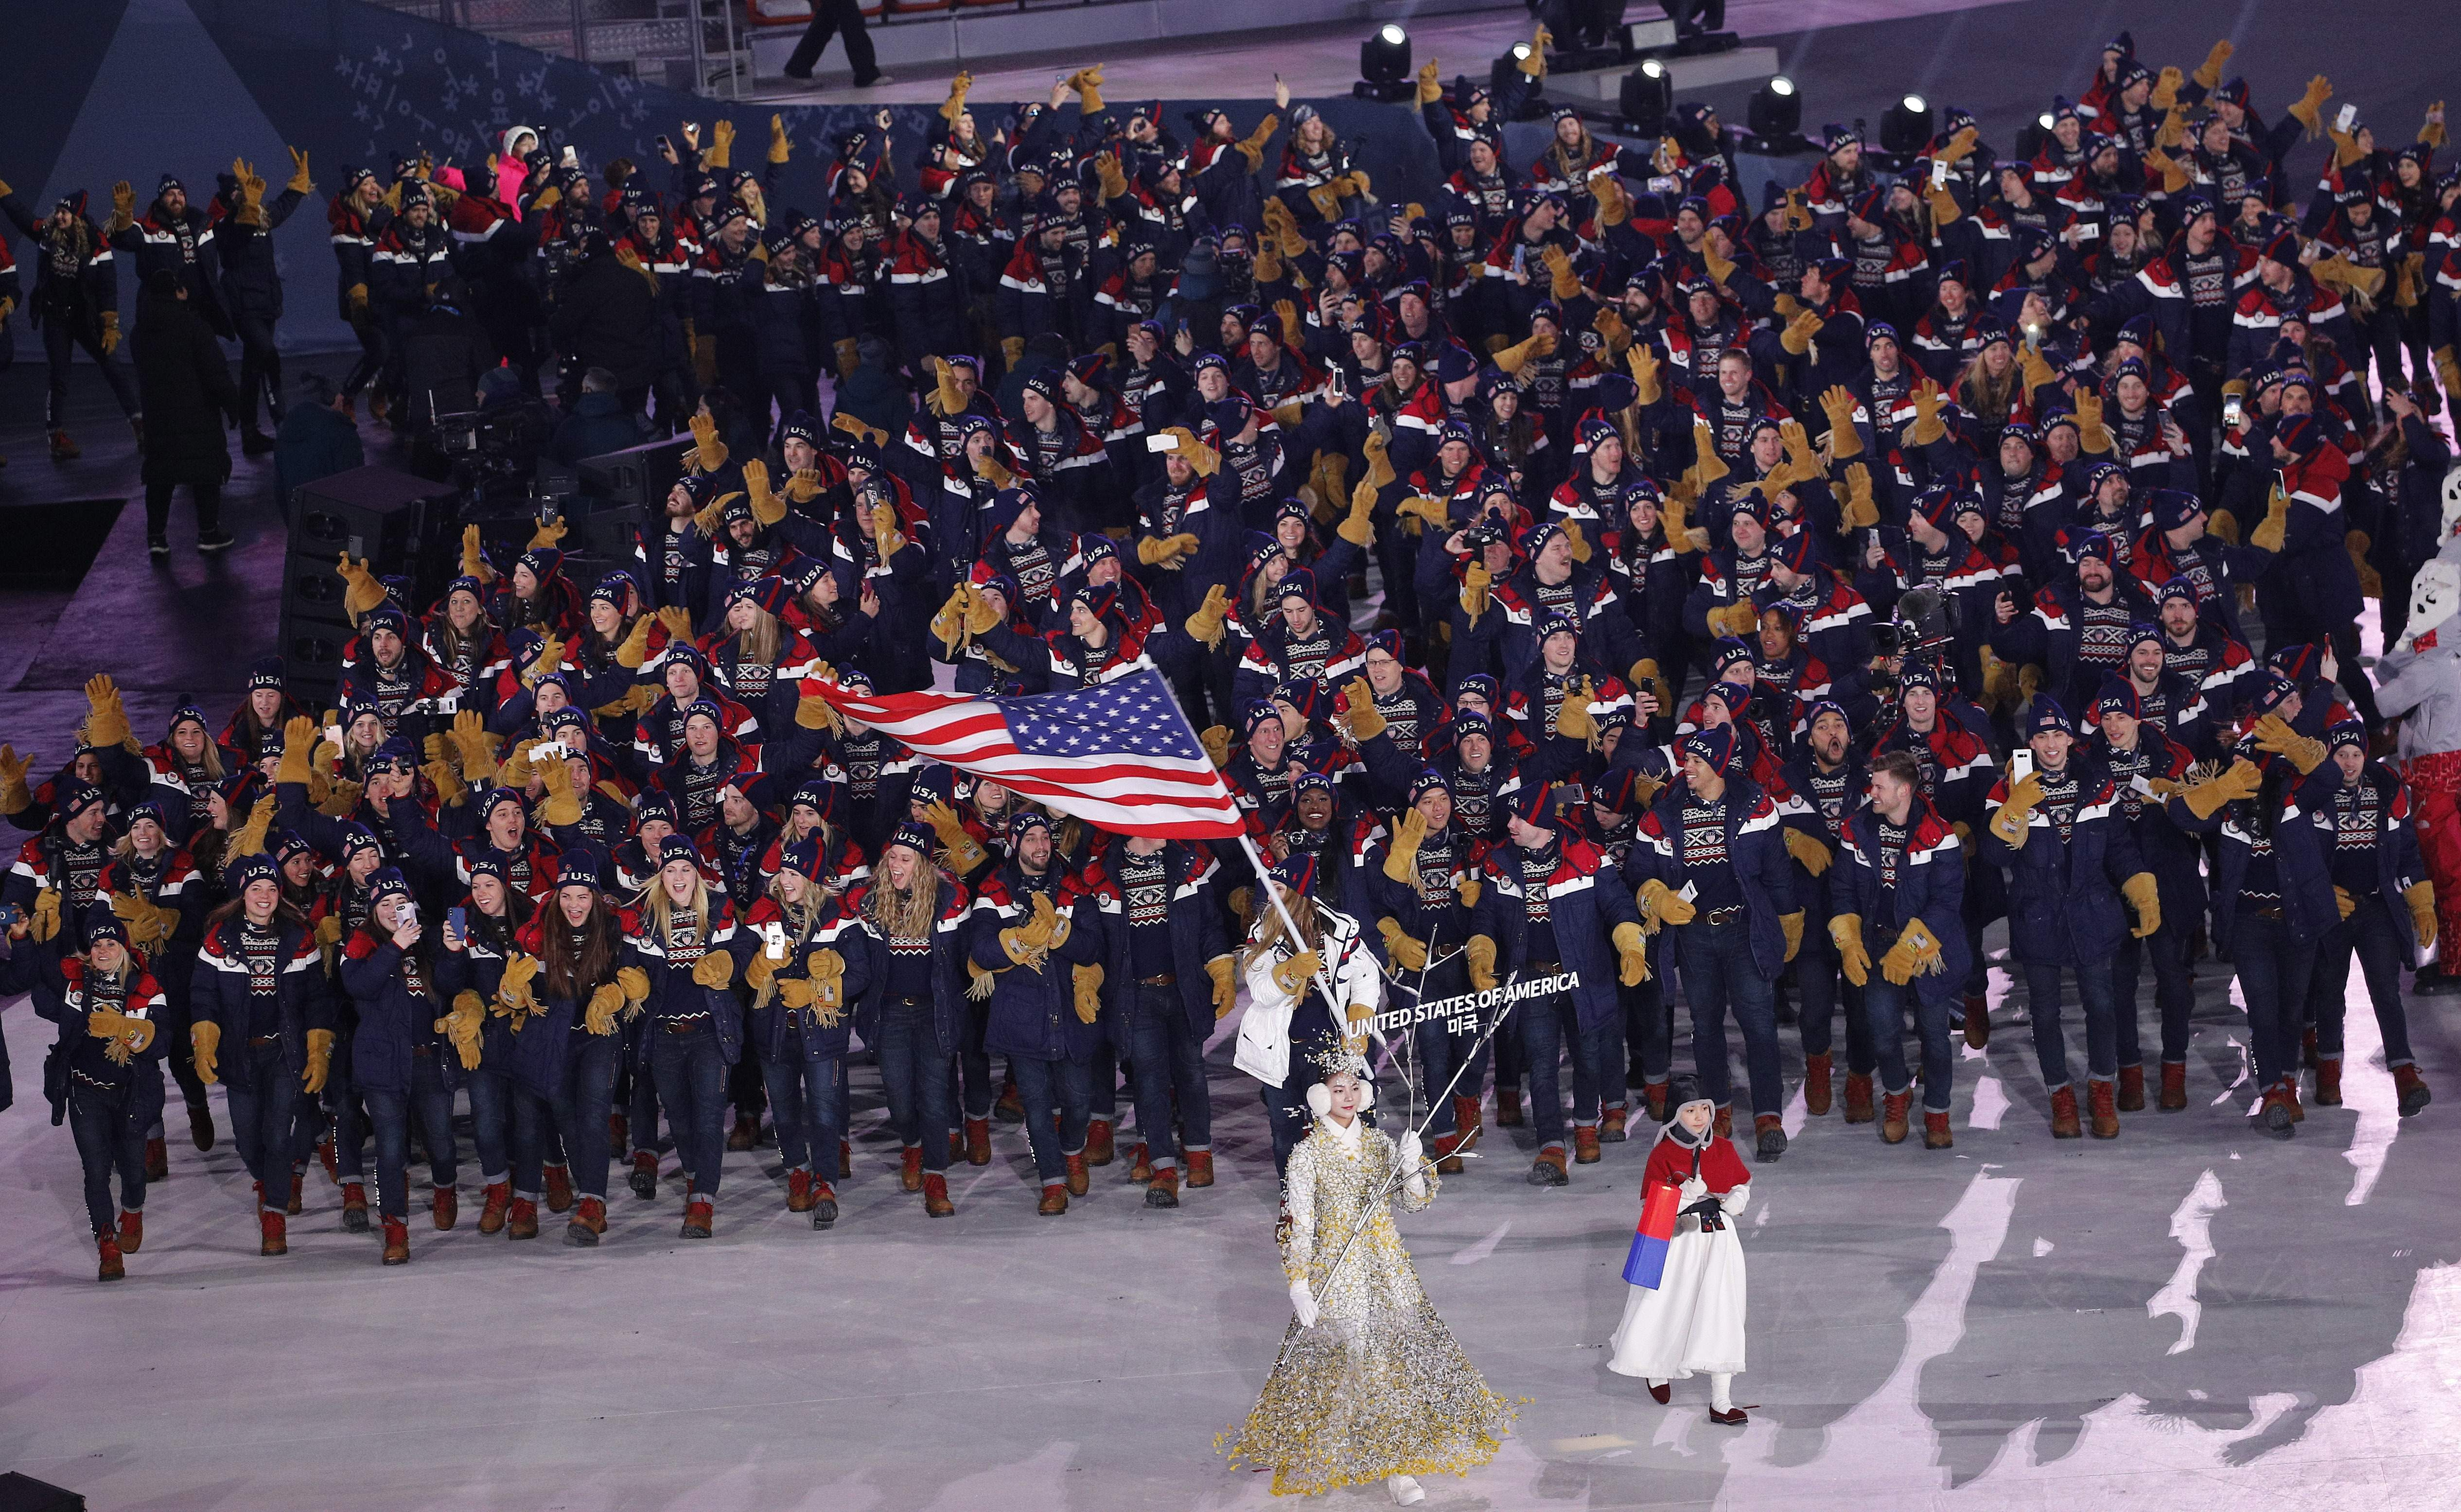 Erin Hamlin carries the flag of the United States during the opening ceremony of the 2018 Winter Olympics in Pyeongchang, South Korea, Friday, Feb. 9, 2018. (AP Photo/Christophe Ena)